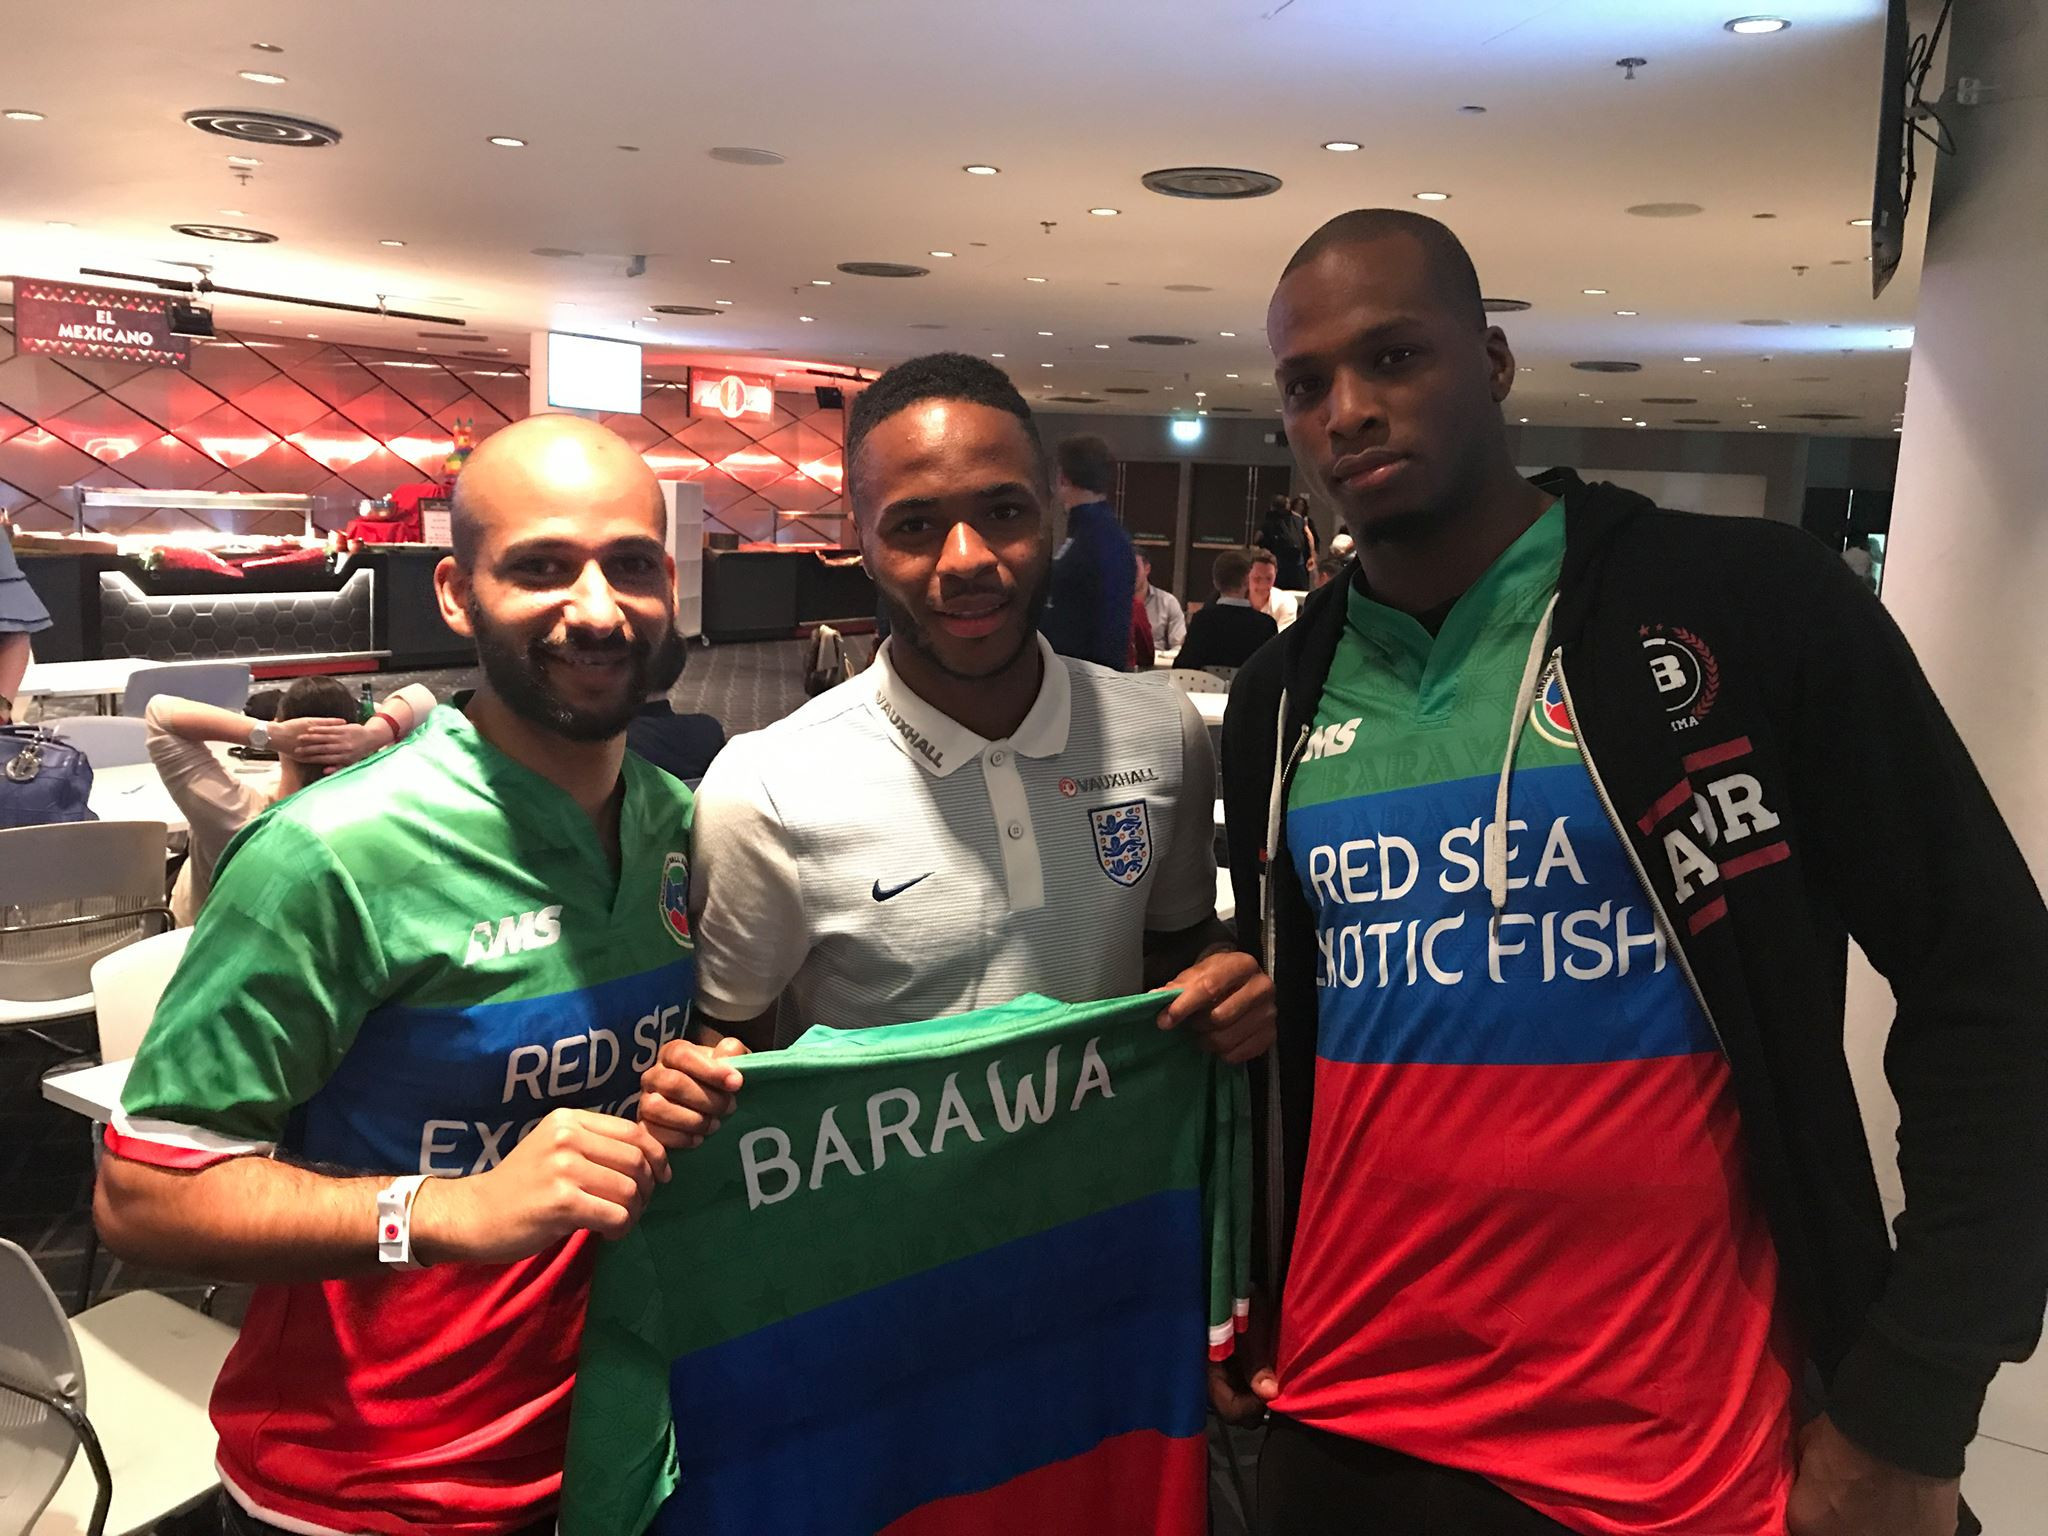 The 2018 World Football Cup will be hosted in London by members of the Barawa Football Association, who are exiles from the Somali region and are seeking to raise awareness of the problems of their native area  ©Barawa Football Association/Facebook